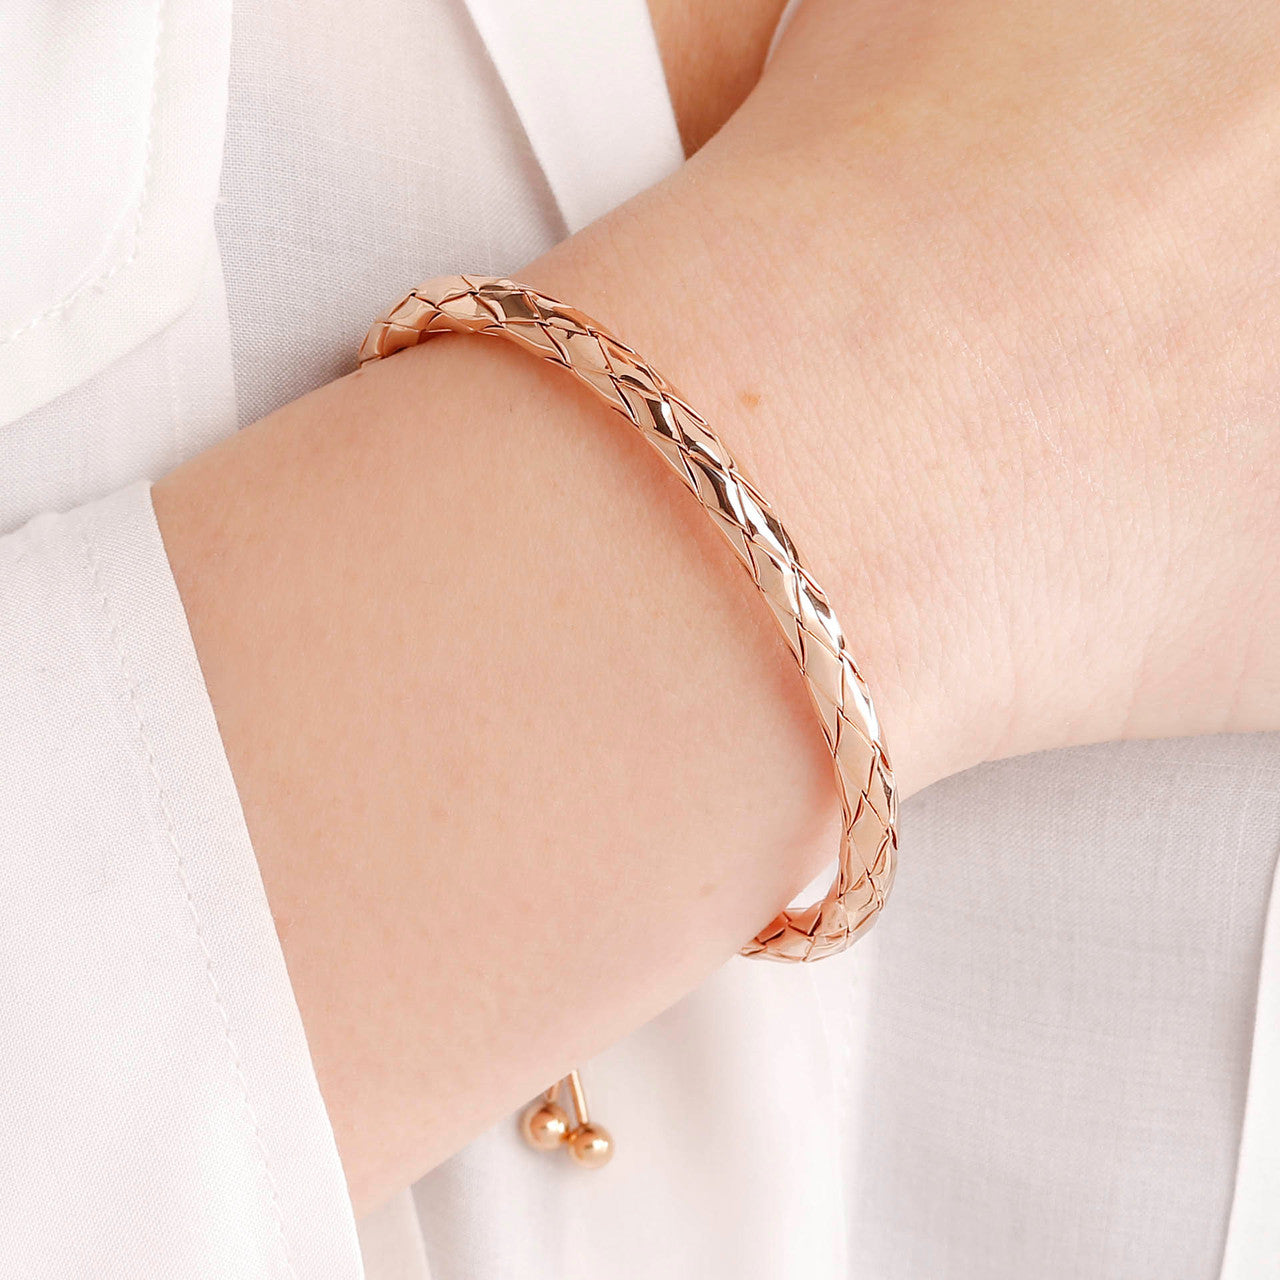 worn Purezza Braided Friendship Cuff